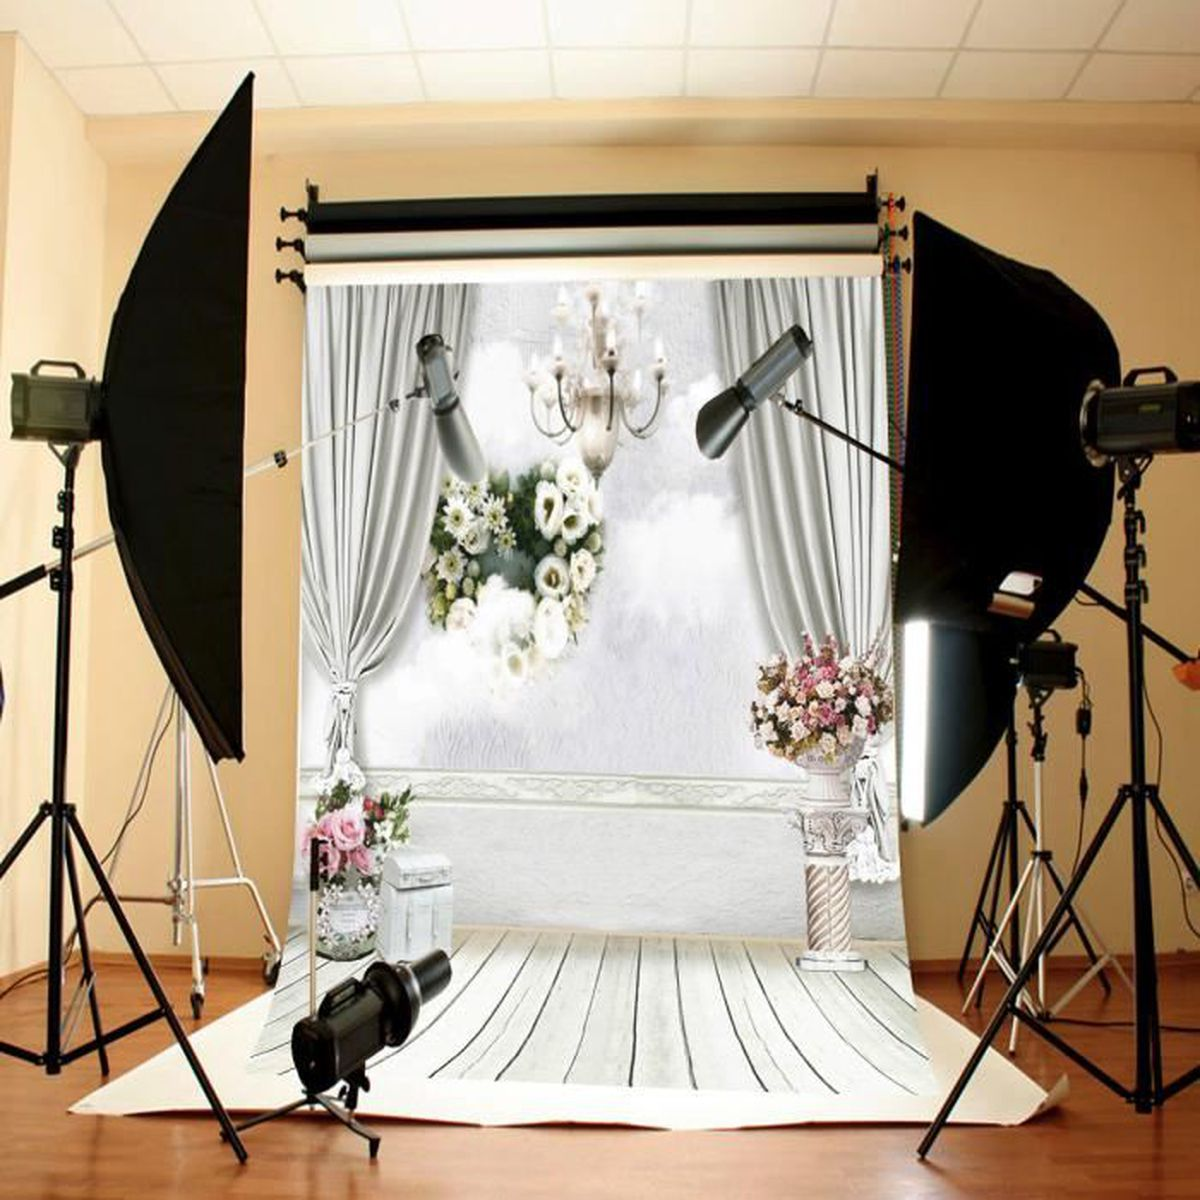 tempsa toile de fond backdrop tissu mariage fleurs photographie studio photo achat. Black Bedroom Furniture Sets. Home Design Ideas